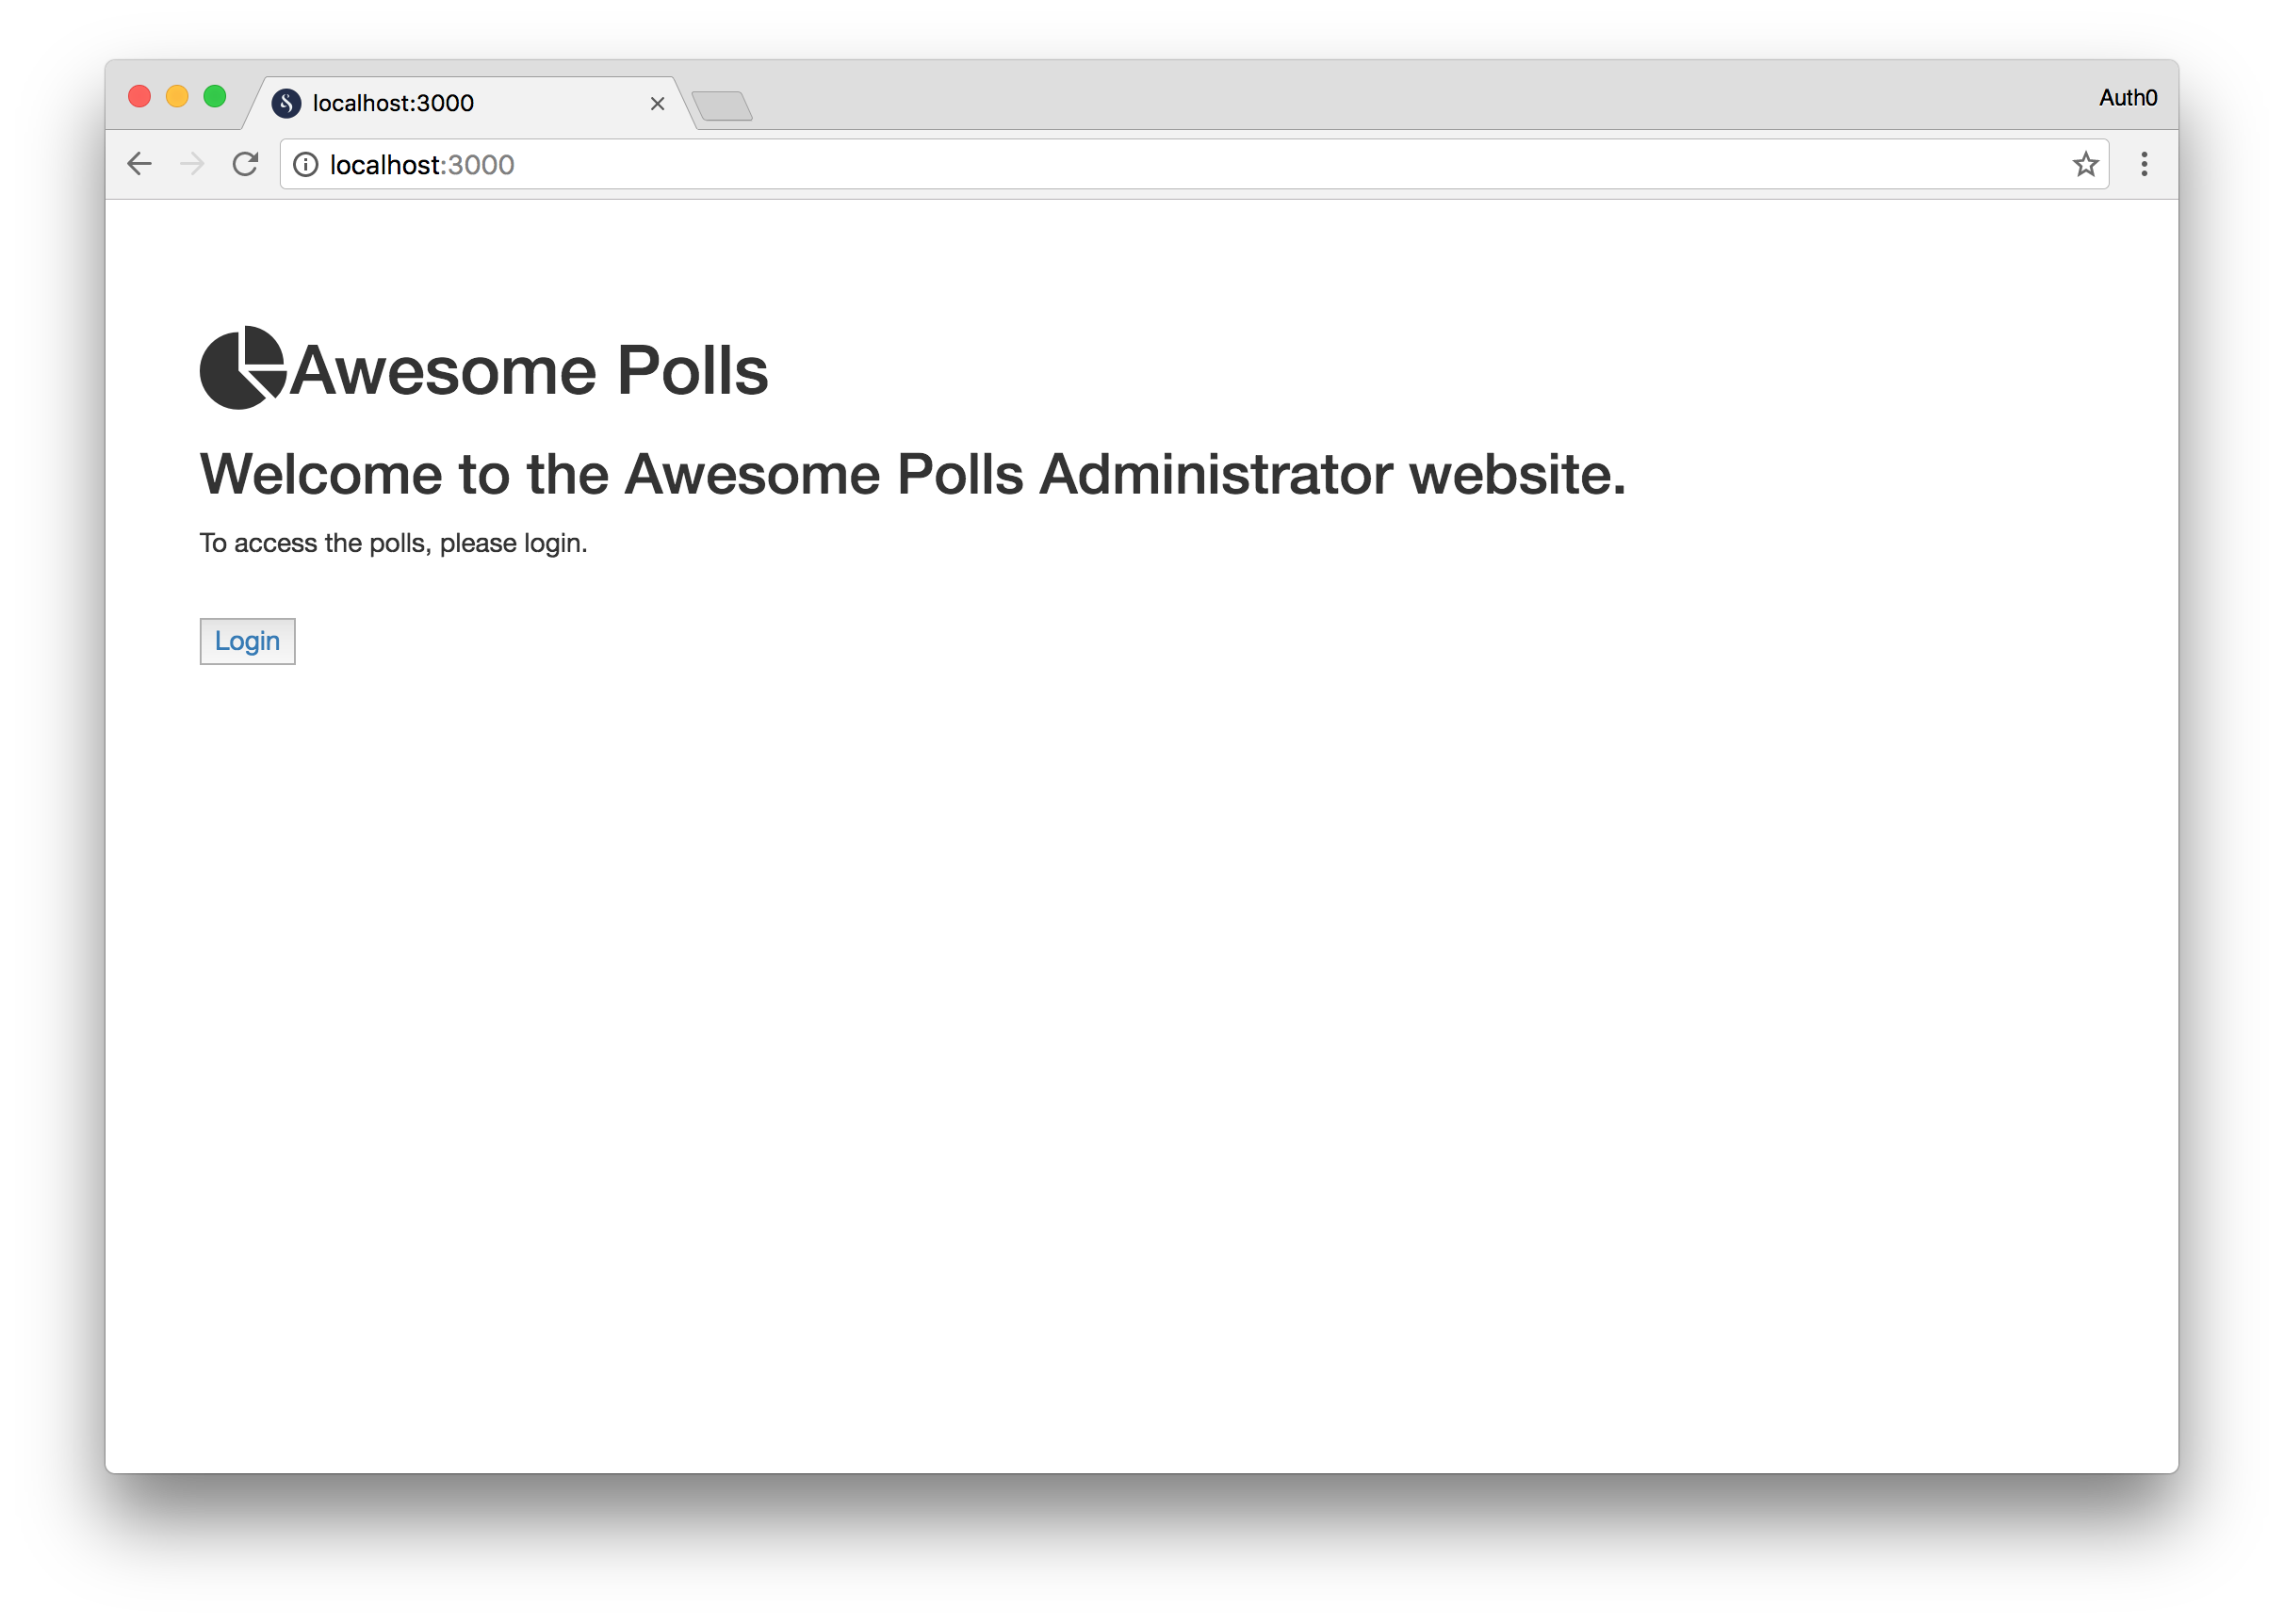 Awesome Polls Homepage